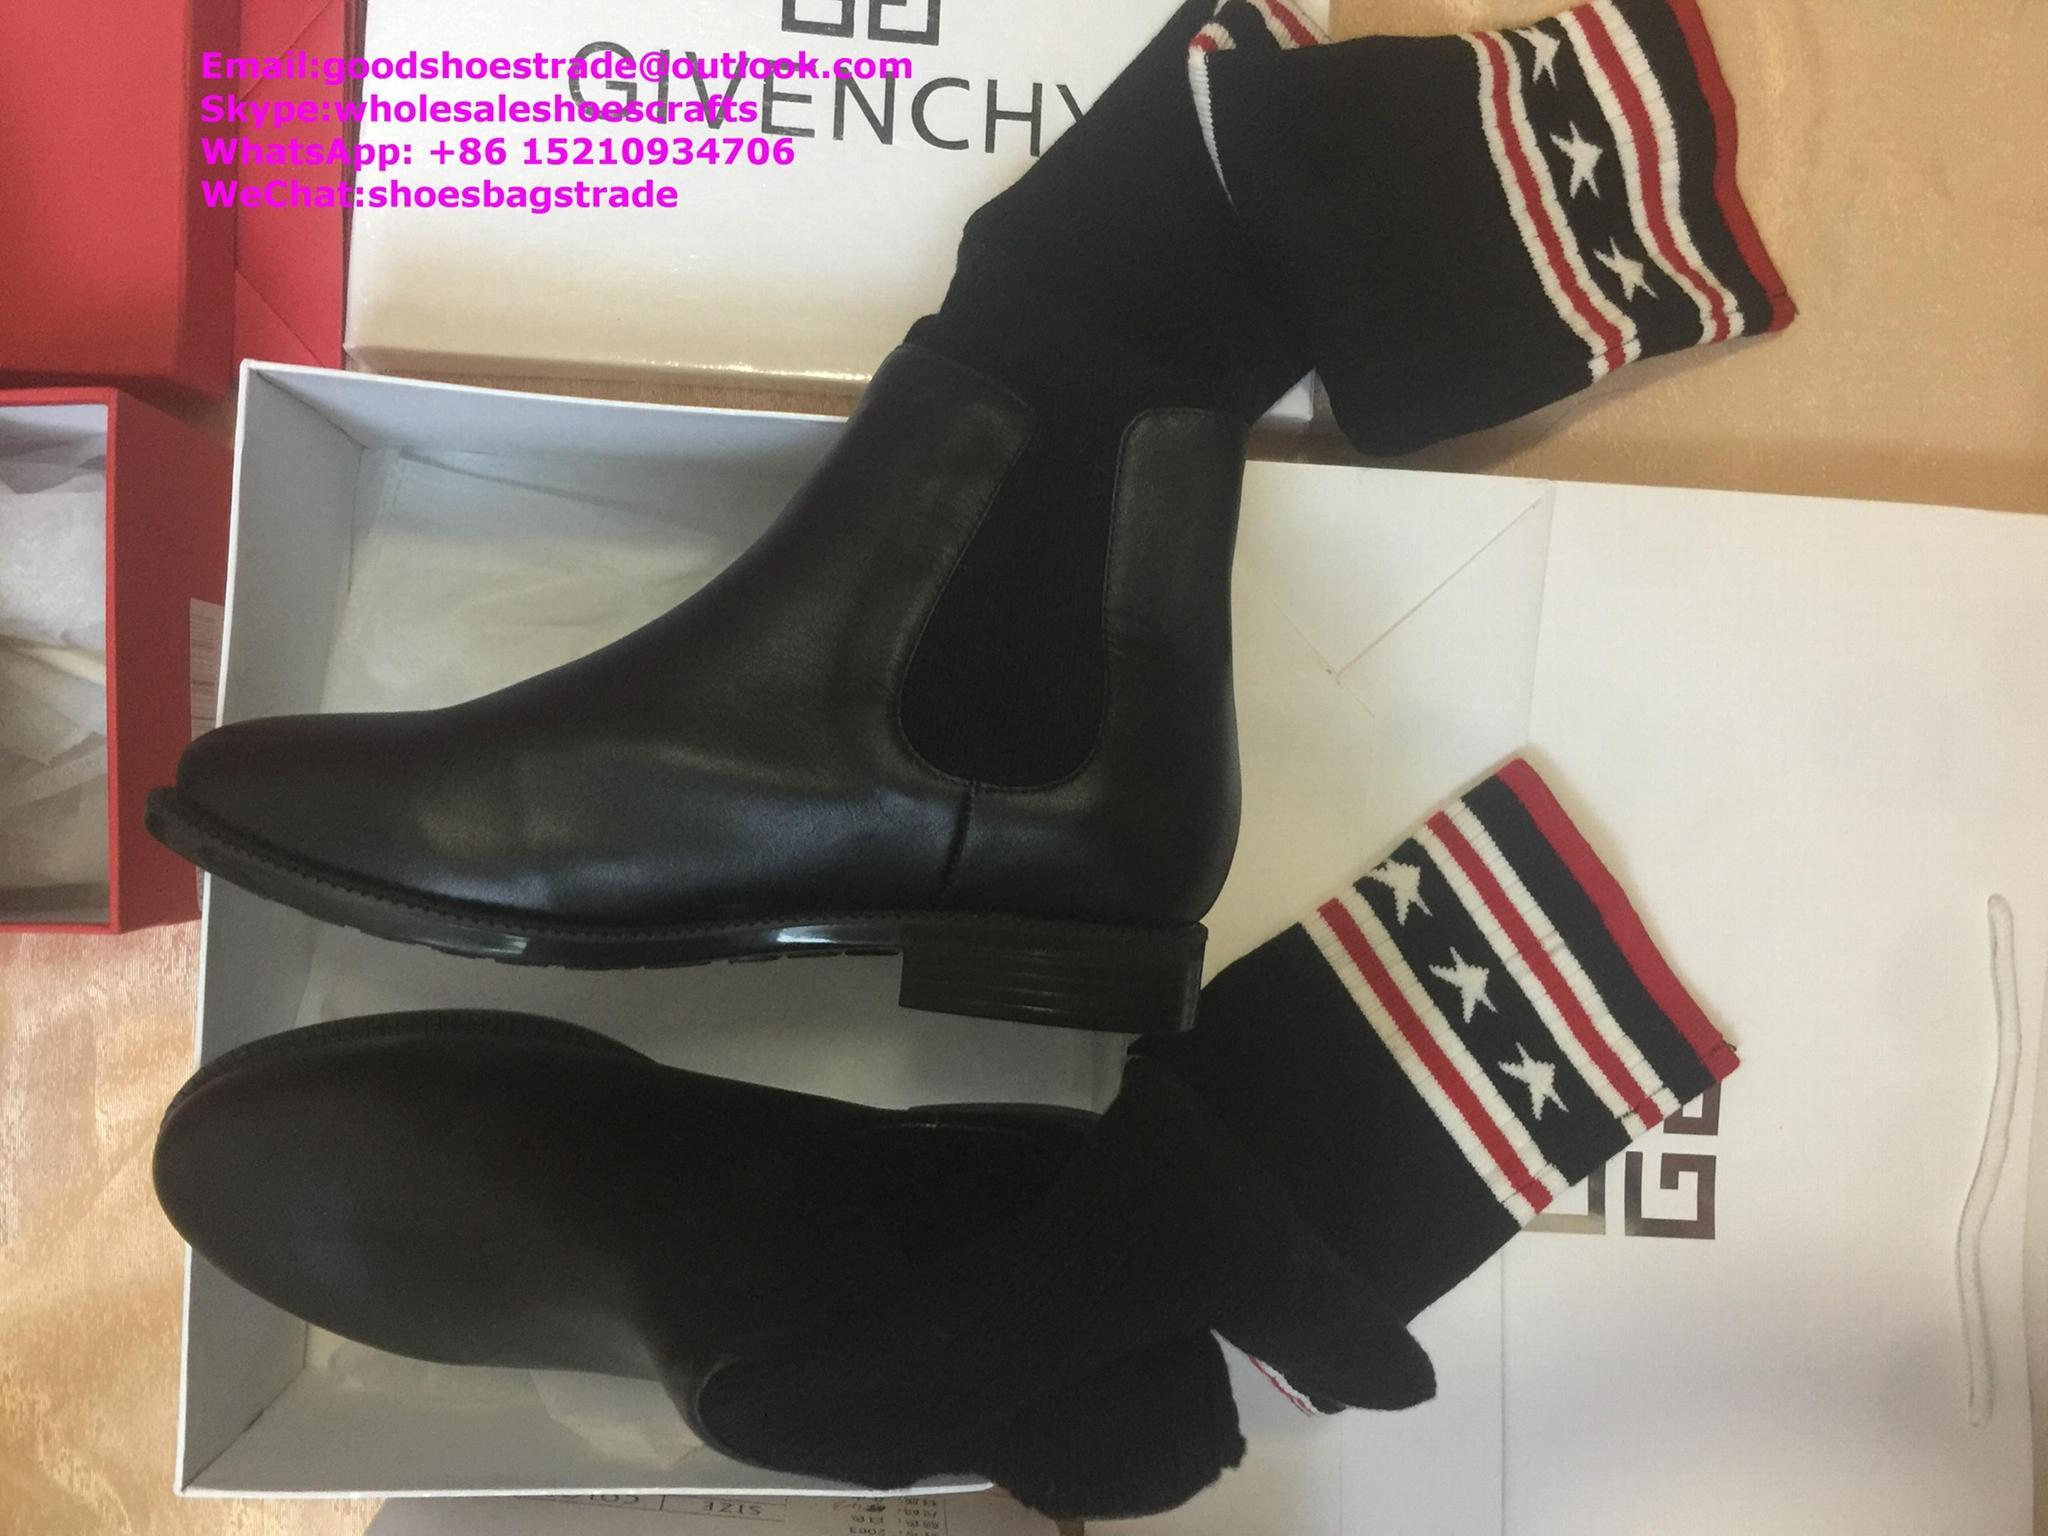 givenchy boots over the knee knitted rainboots in rubber shark lock boots 13